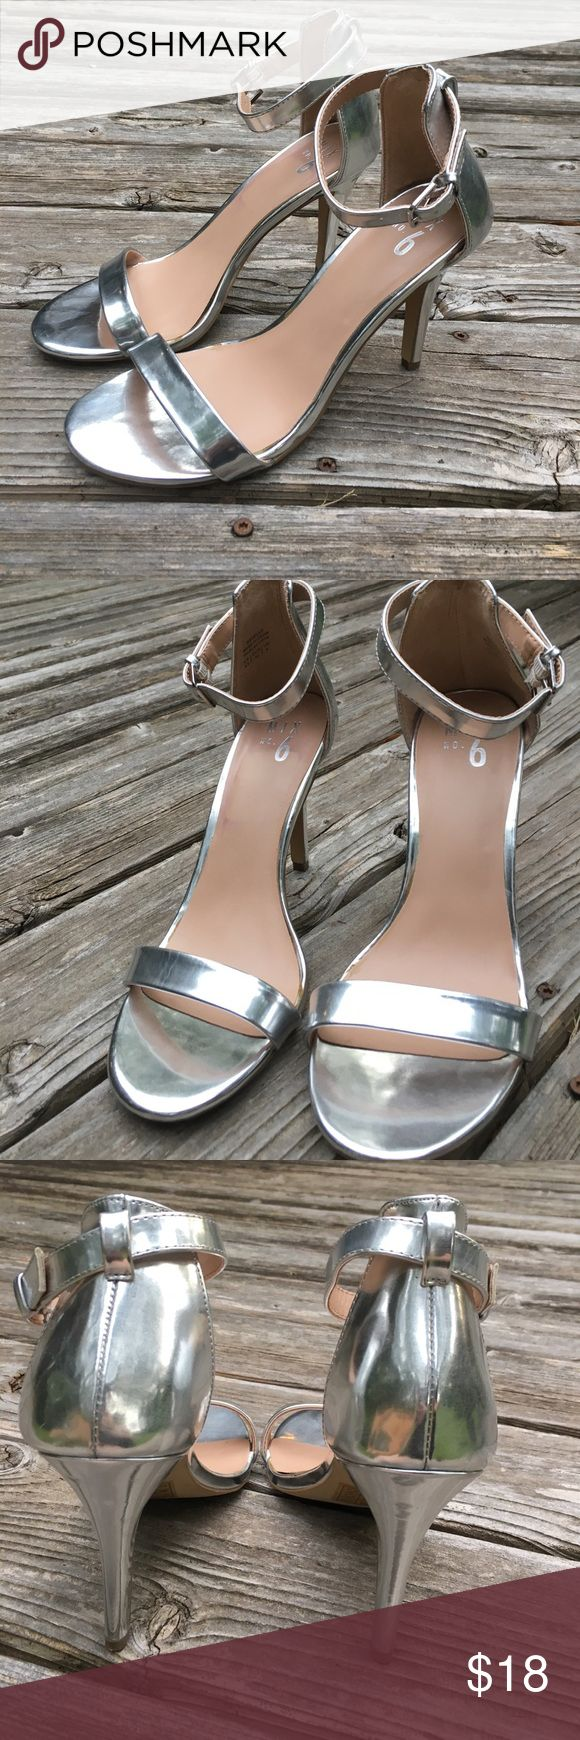 """Silver Heels 4"""" These are absolutely beautiful silver heels, perfect for any glam occasion. I am reposhing these with much sadness, as they are just too small for my 9.5 feet  in perfect condition, barely look worn. PRICE FIRM on these. Mix No. 6 Shoes Heels"""